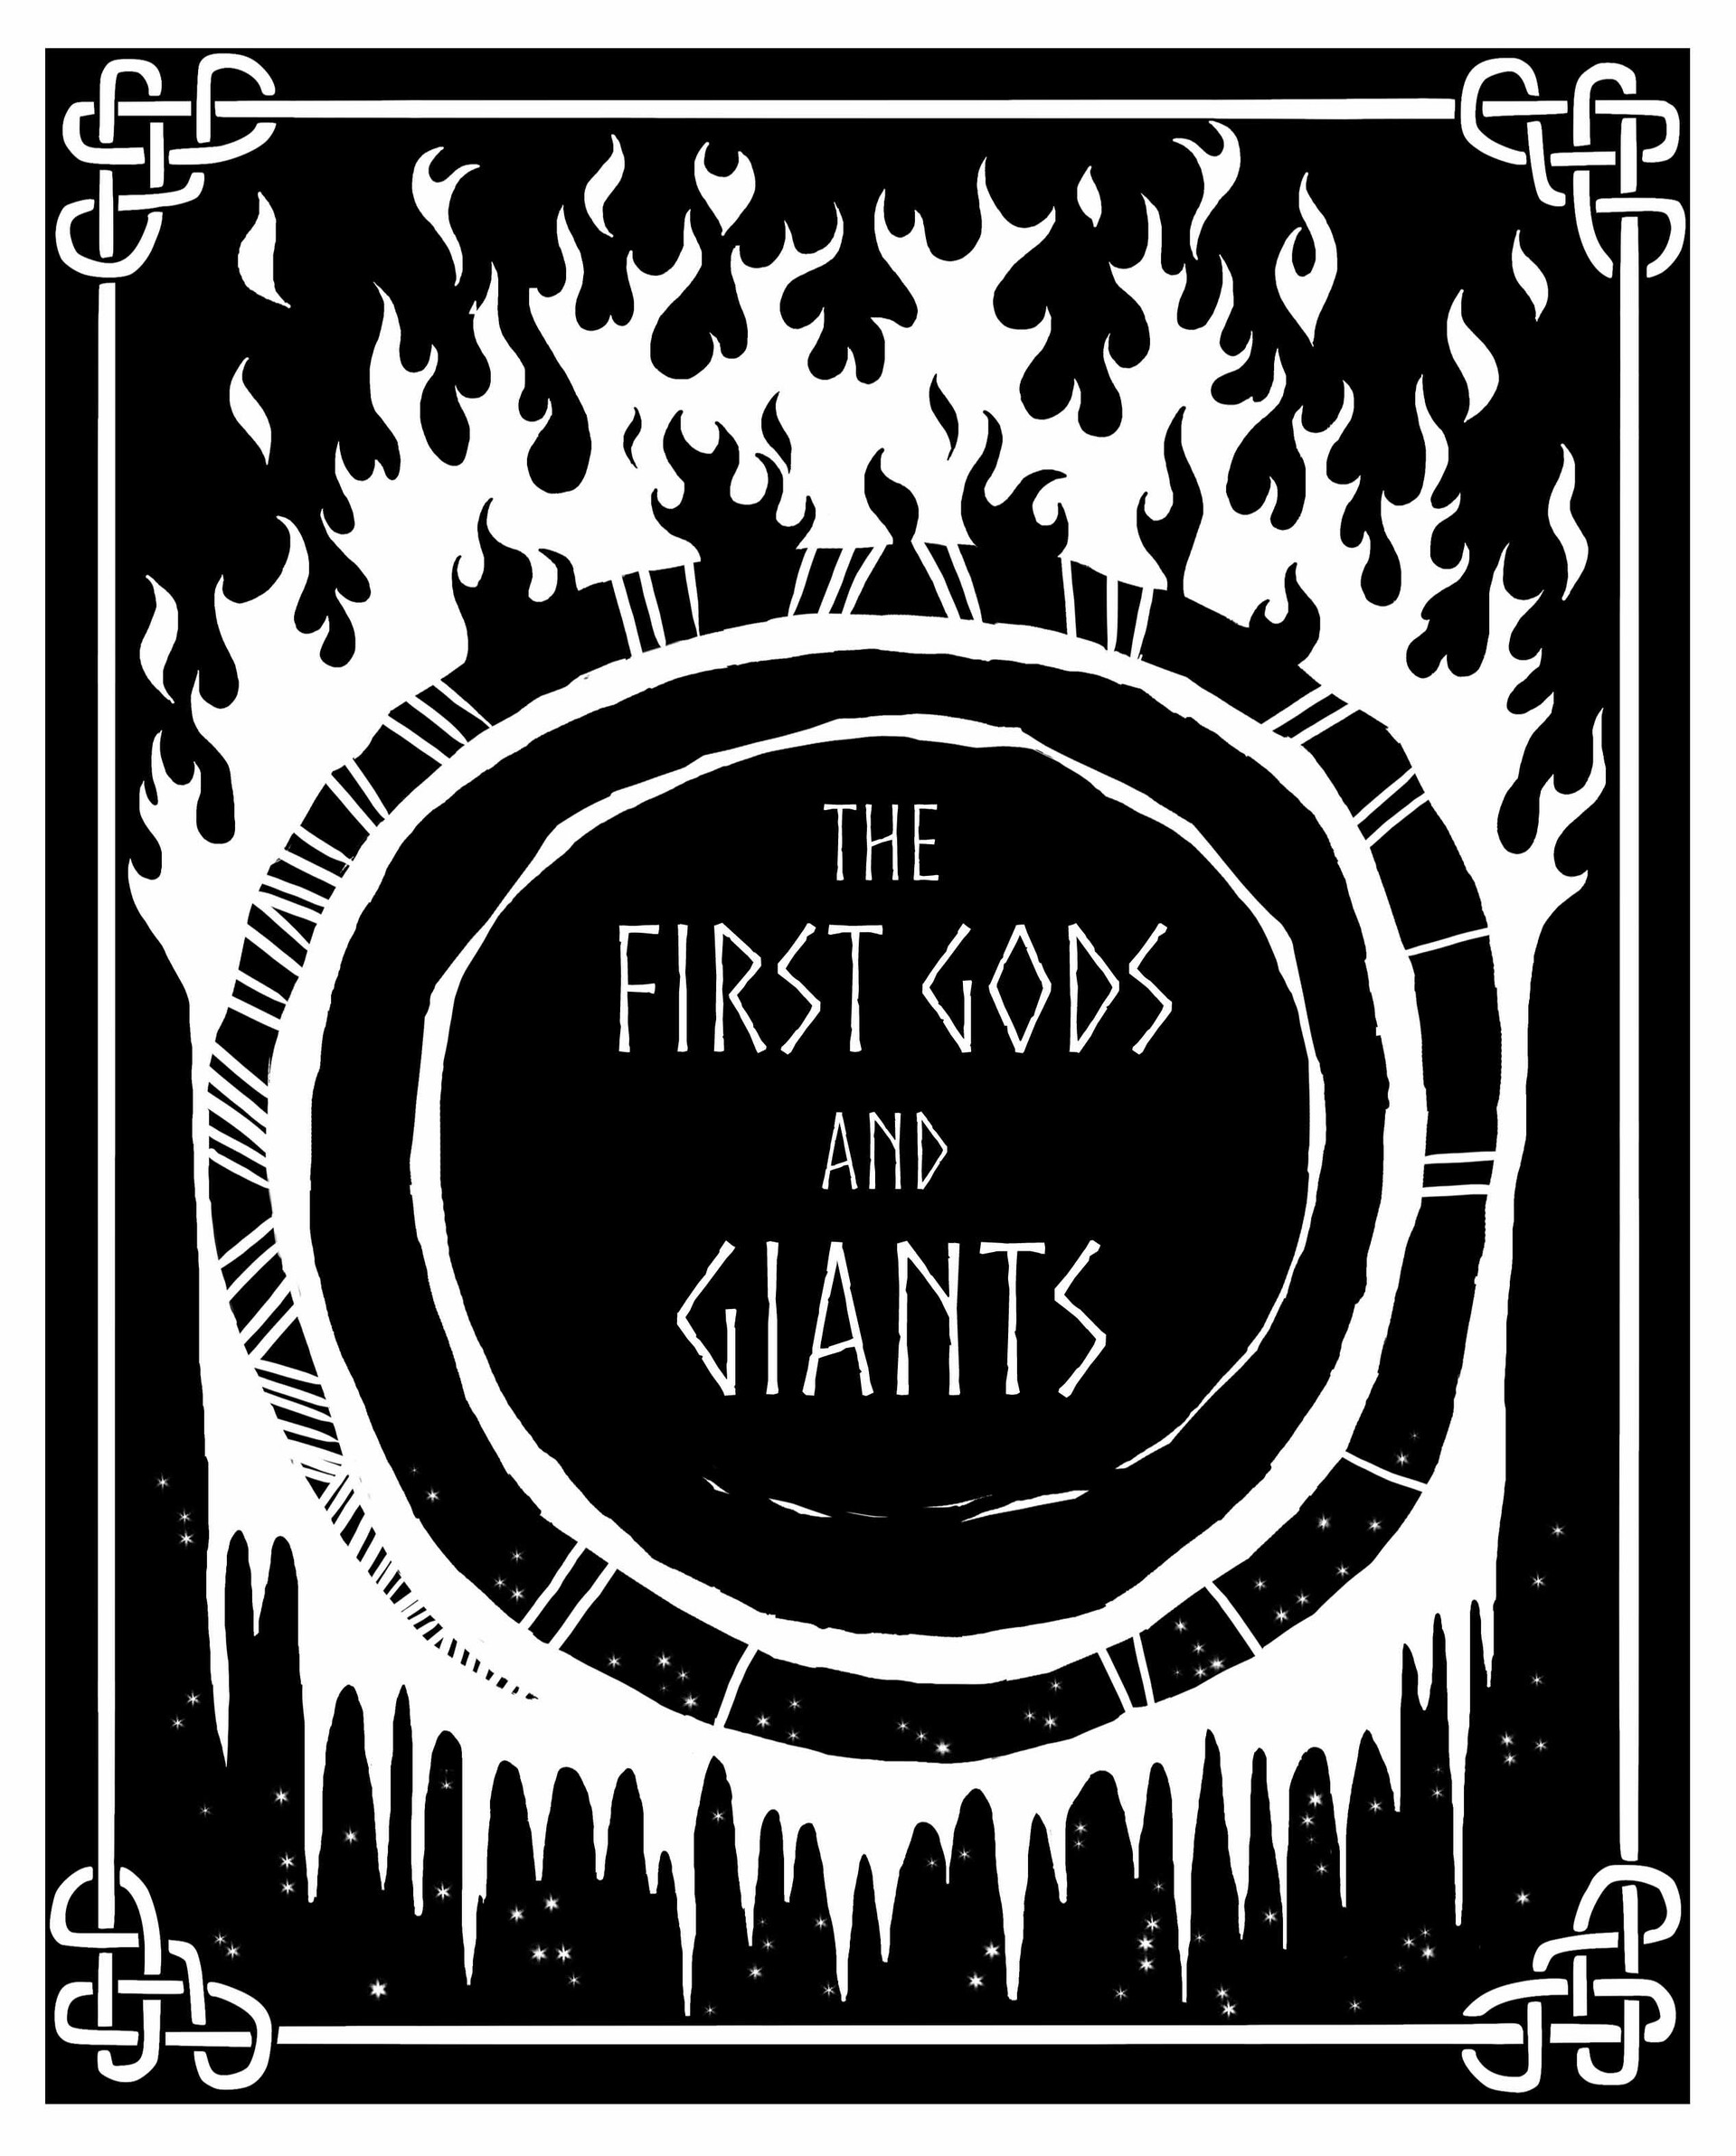 Mary roach the first gods and giants cover crop